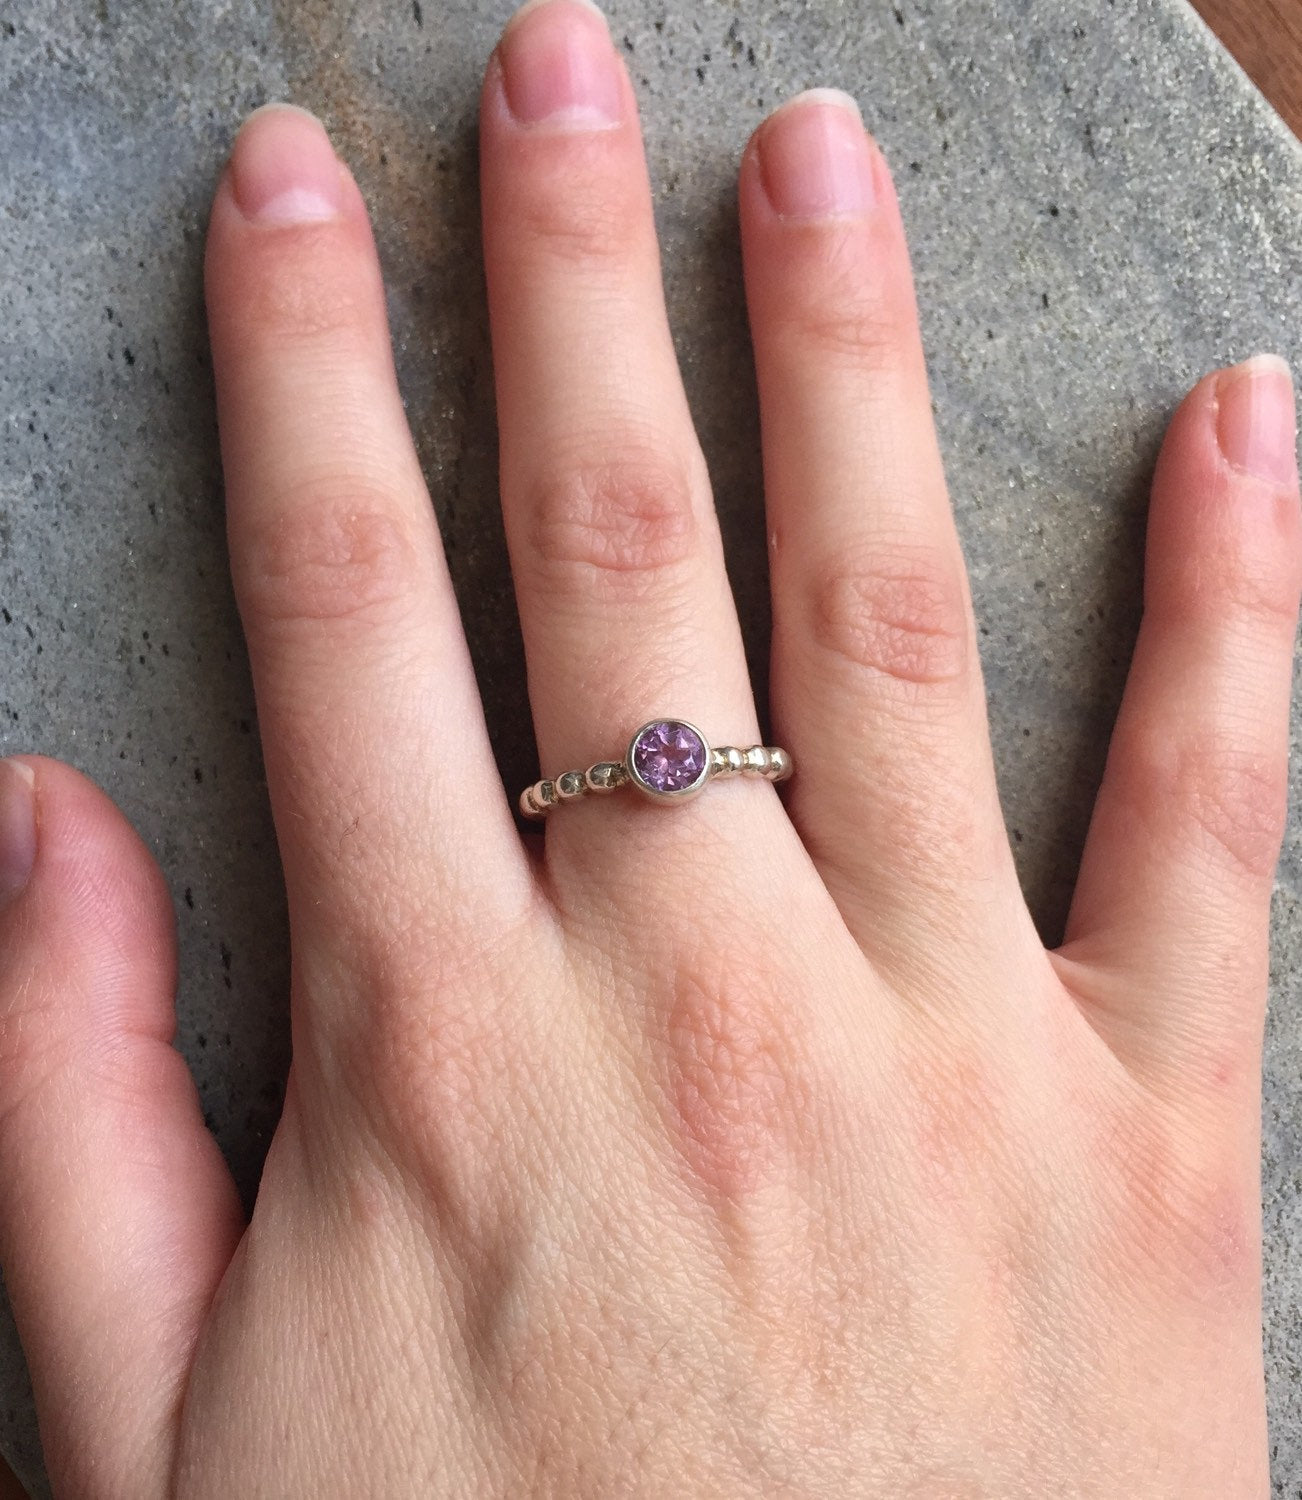 a95625f02 ... Amethyst Ring, Stackable Ring, Stackable Rings, Birthstone Ring, Pandora  Rings, February